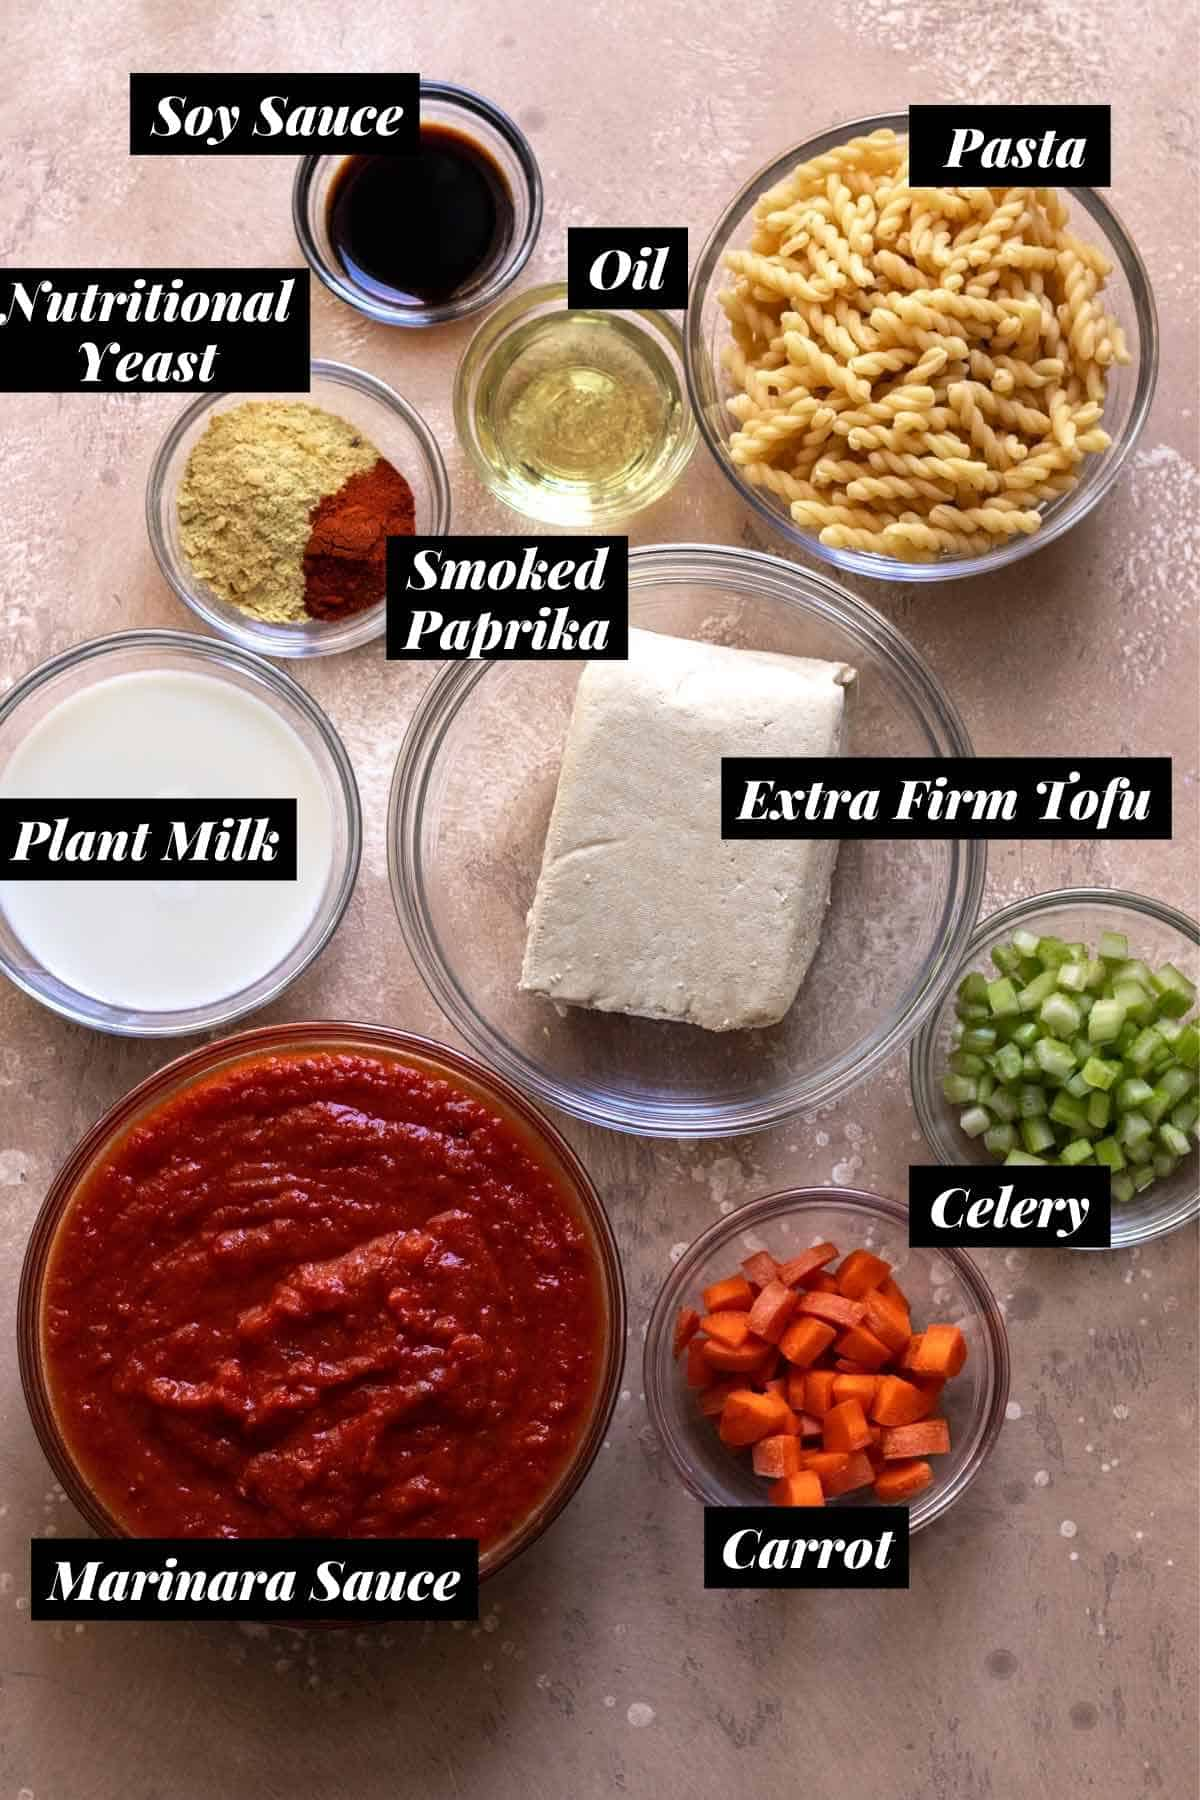 Bolognese ingredients measured into individual glass bowls and labeled.